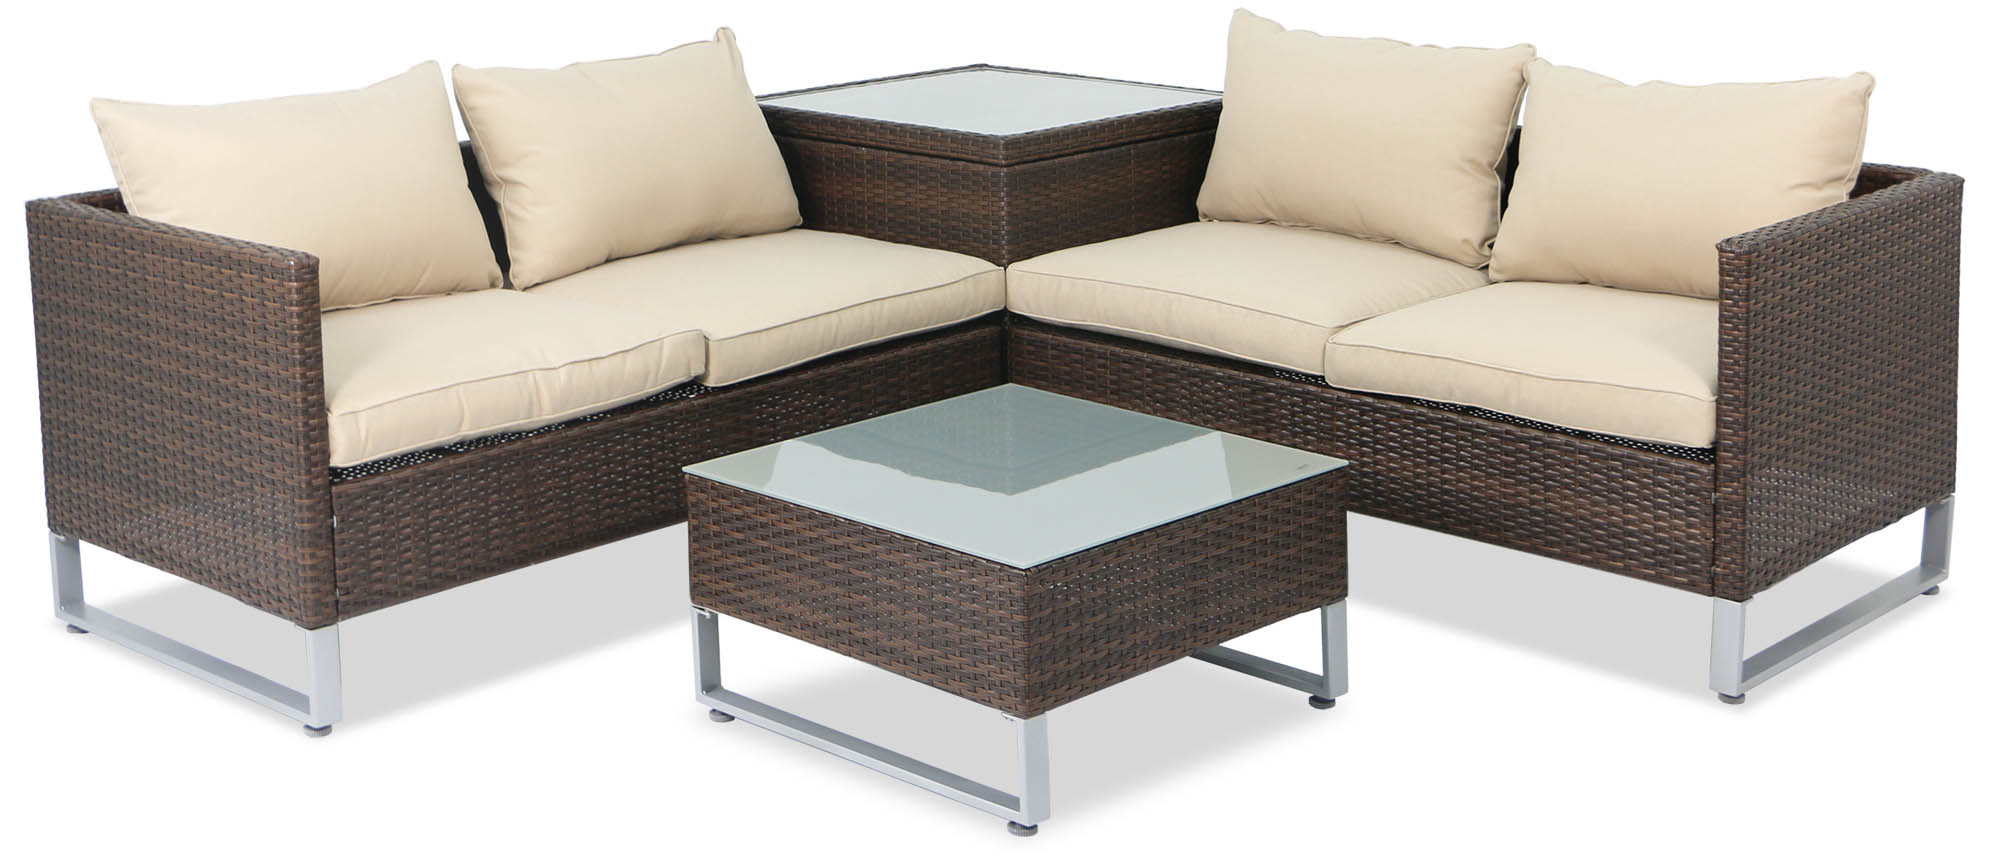 Outdoor Couch Royal Synthetic Rattan Outdoor Sofa Set With Storage Box Brown